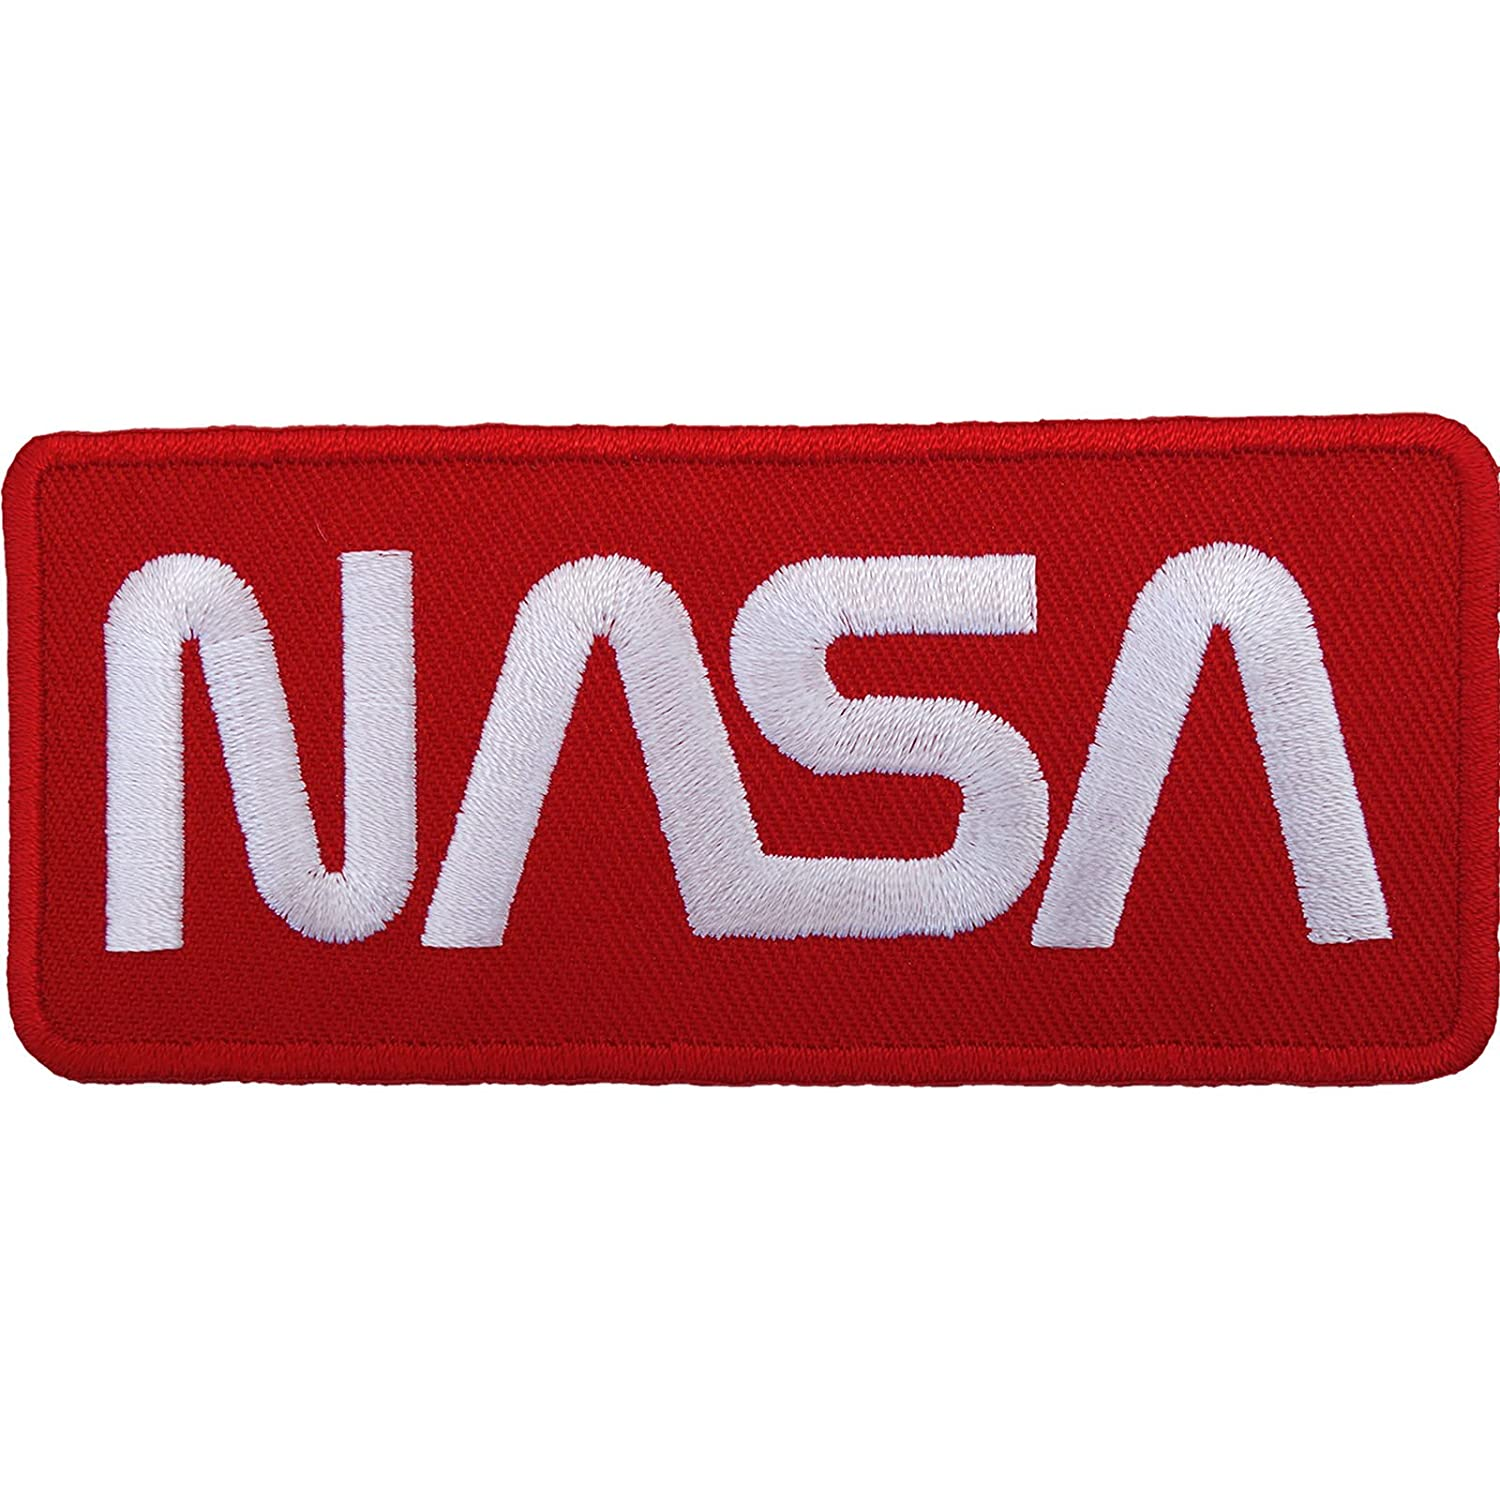 USA ASTRONAUT Embroidered Iron Sew On Patches Badges Transfers Fancy Dress